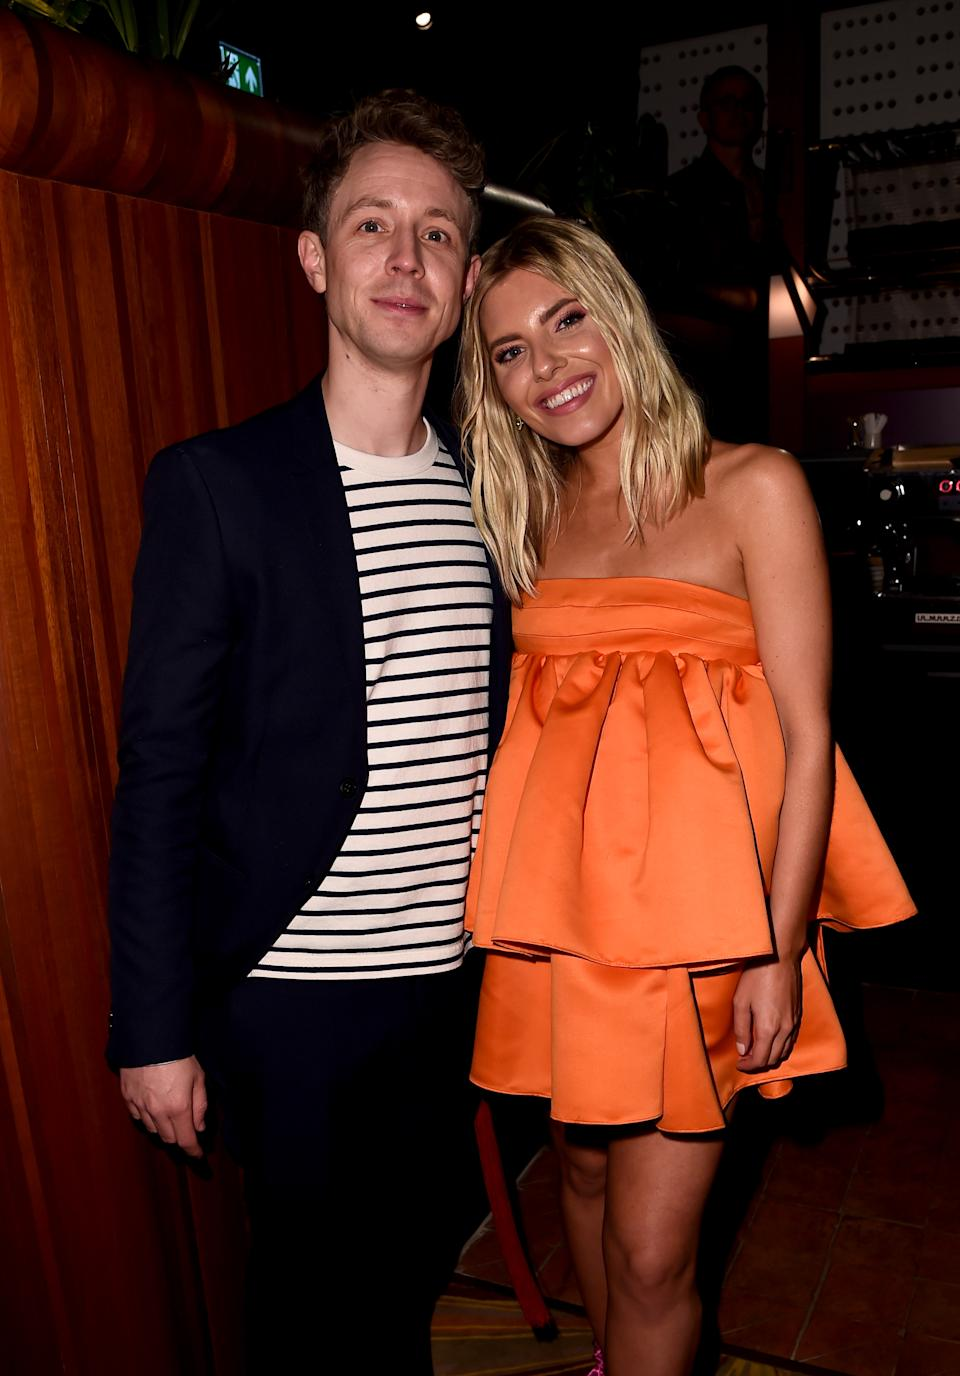 LONDON, ENGLAND - FEBRUARY 18: Matt Edmondson and Mollie King attend the Sony BRITs after-party at The Standard on February 18, 2020 in London, England. (Photo by Eamonn Mccormack/Getty Images for Sony)